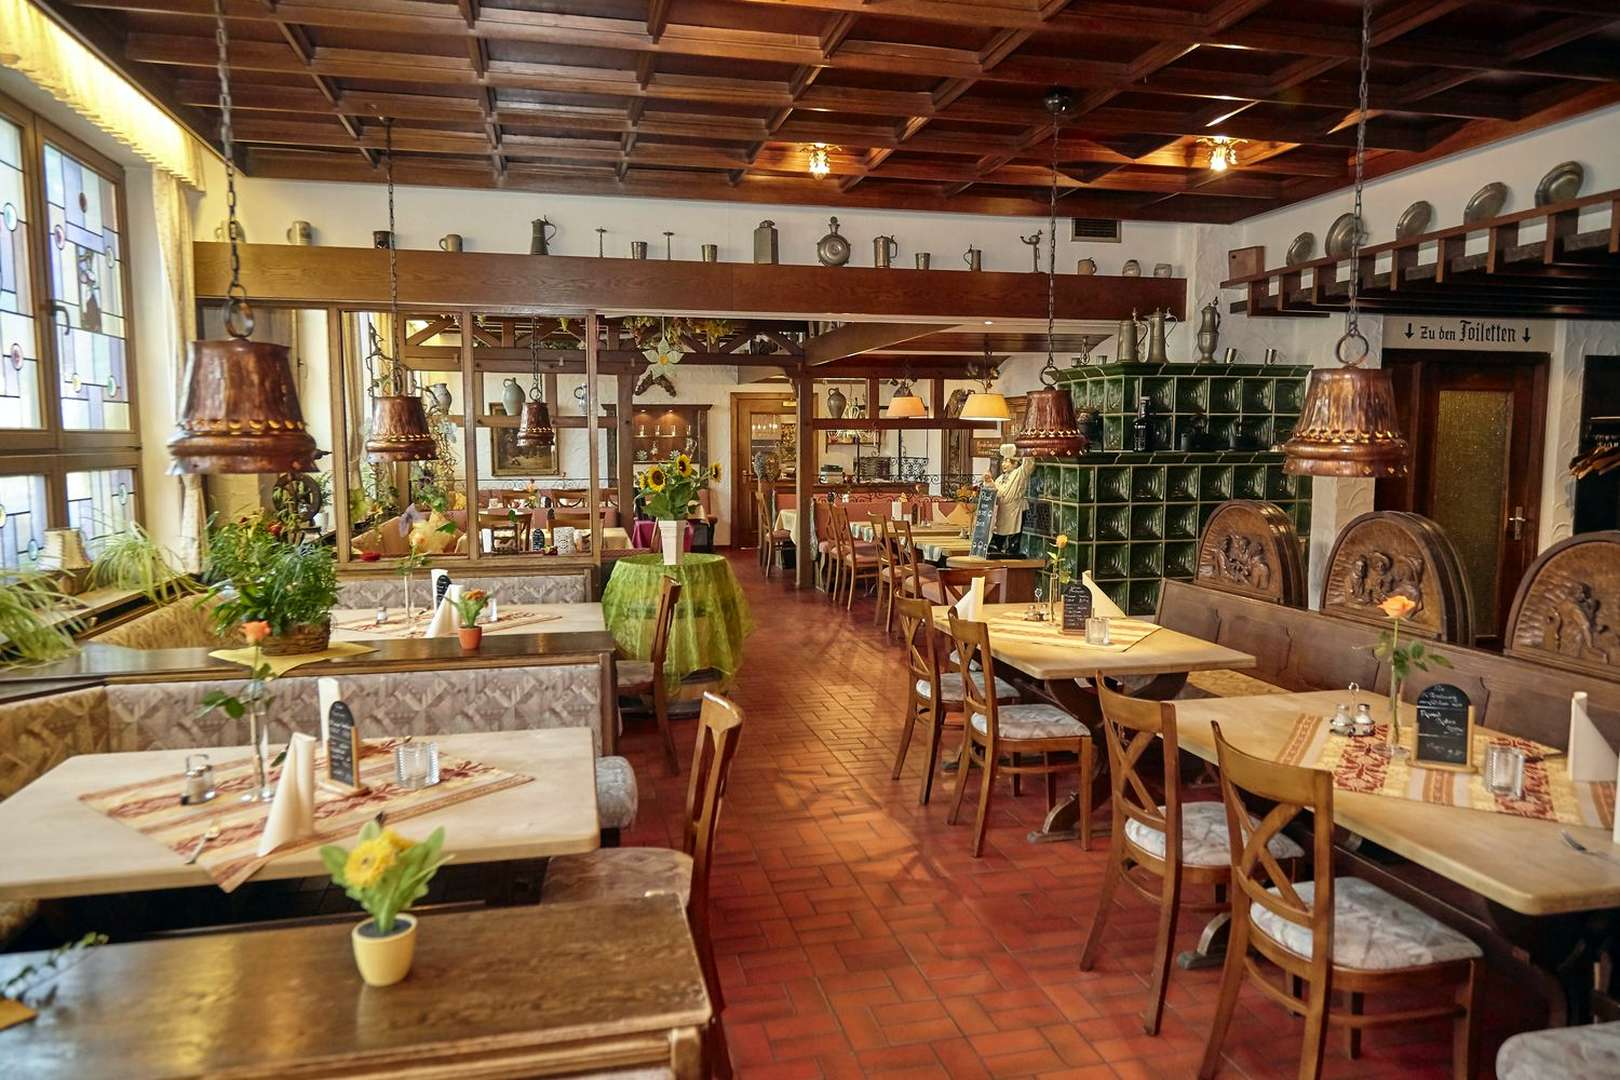 Weinstube Restaurant regionale Taubertal Maintal